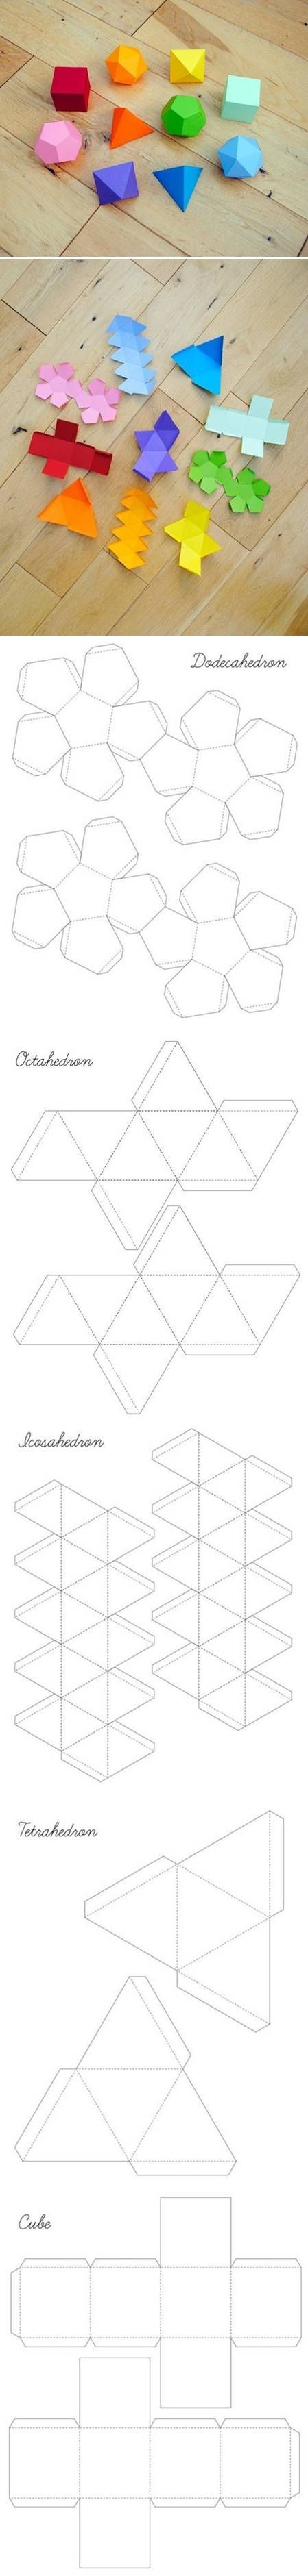 DIY Geometrical Box Templates DIY Projects